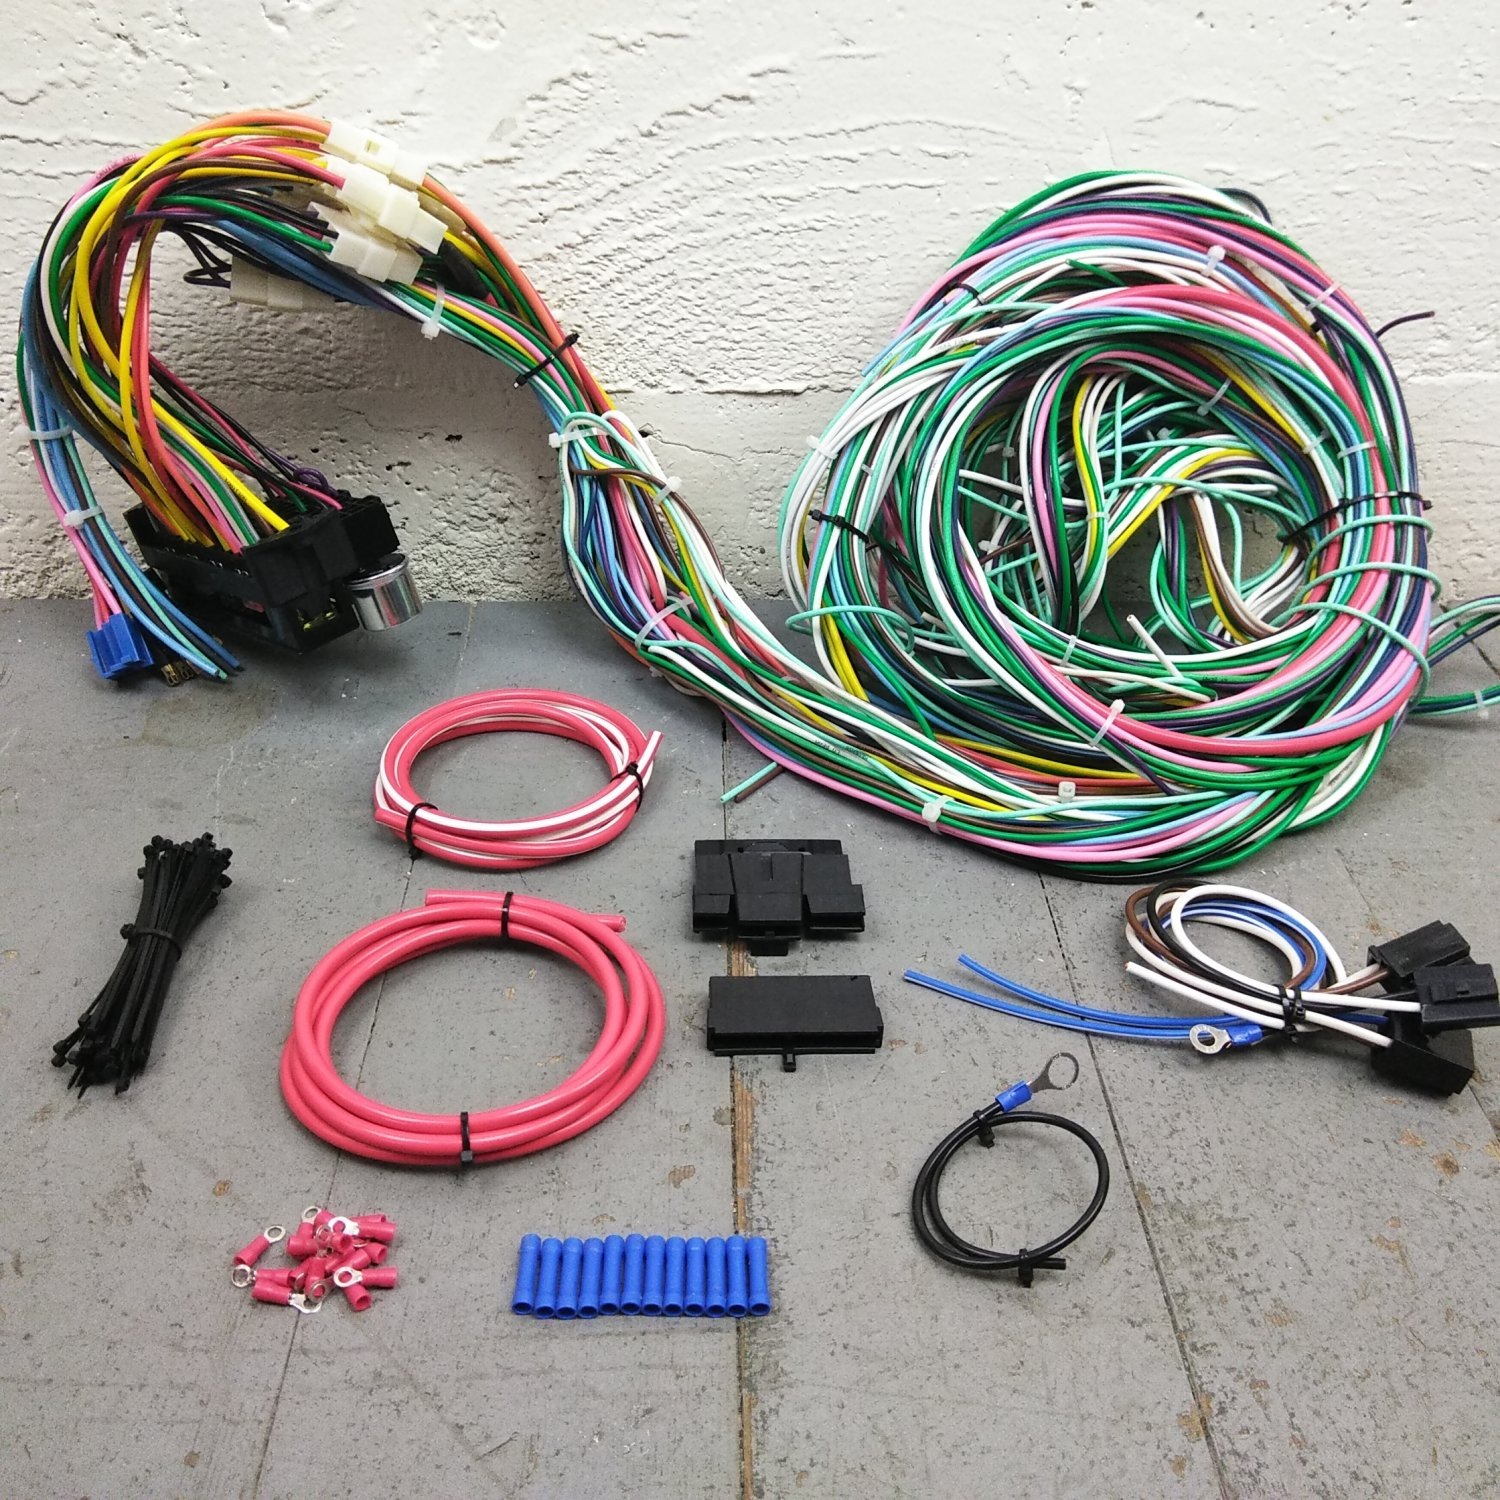 1979 - 1993 Ford Mustang Wire Harness Upgrade Kit fits painless fuse  complete. Bar_Product_Description_C